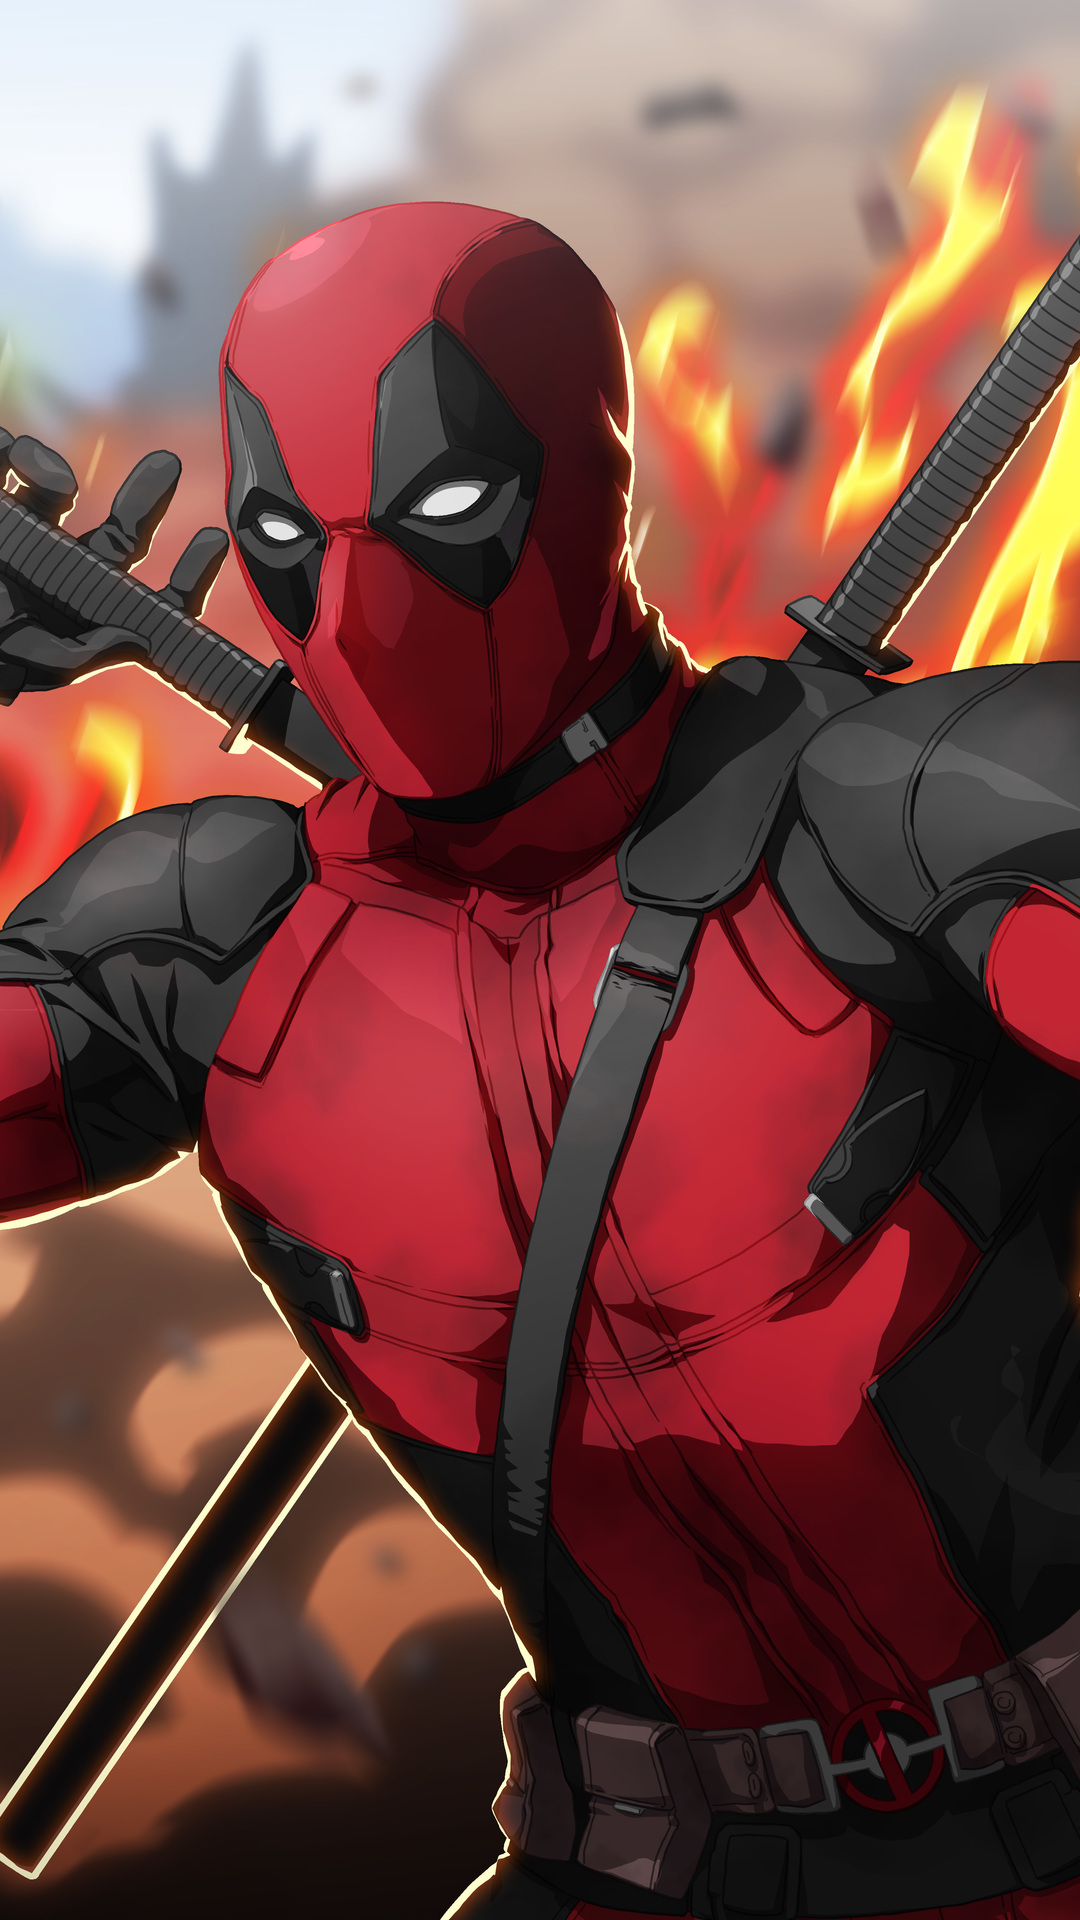 Deadpool Artwork 4k Best Htc One Wallpapers Free And Easy